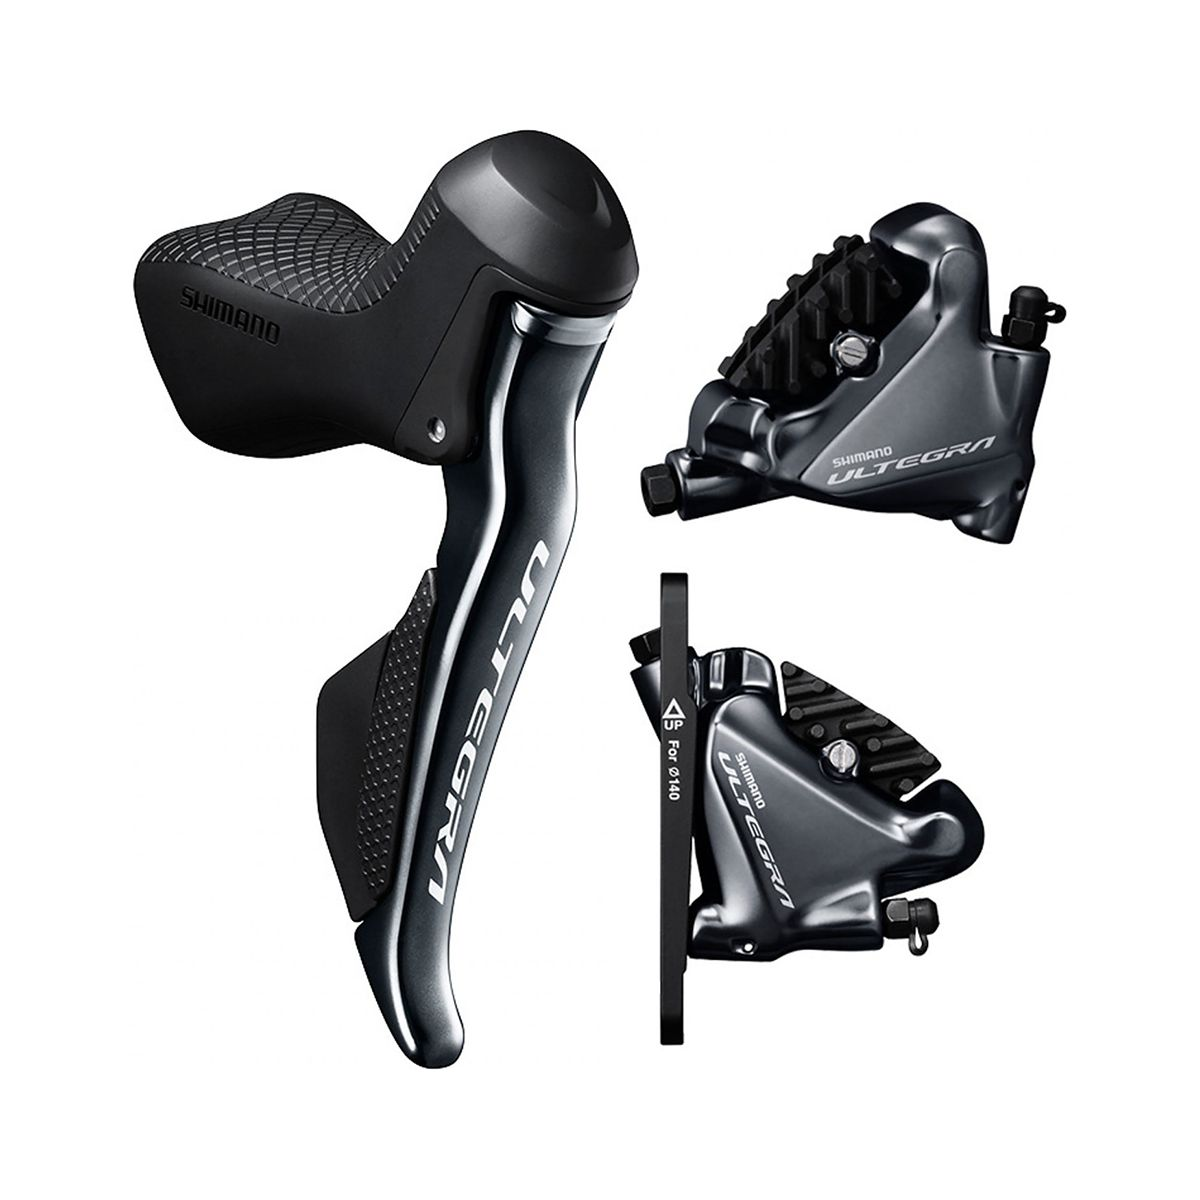 SHIMANO Di2 ST-R8070 brake/shift lever combination + BR-R8070 hydraulic  disc brake